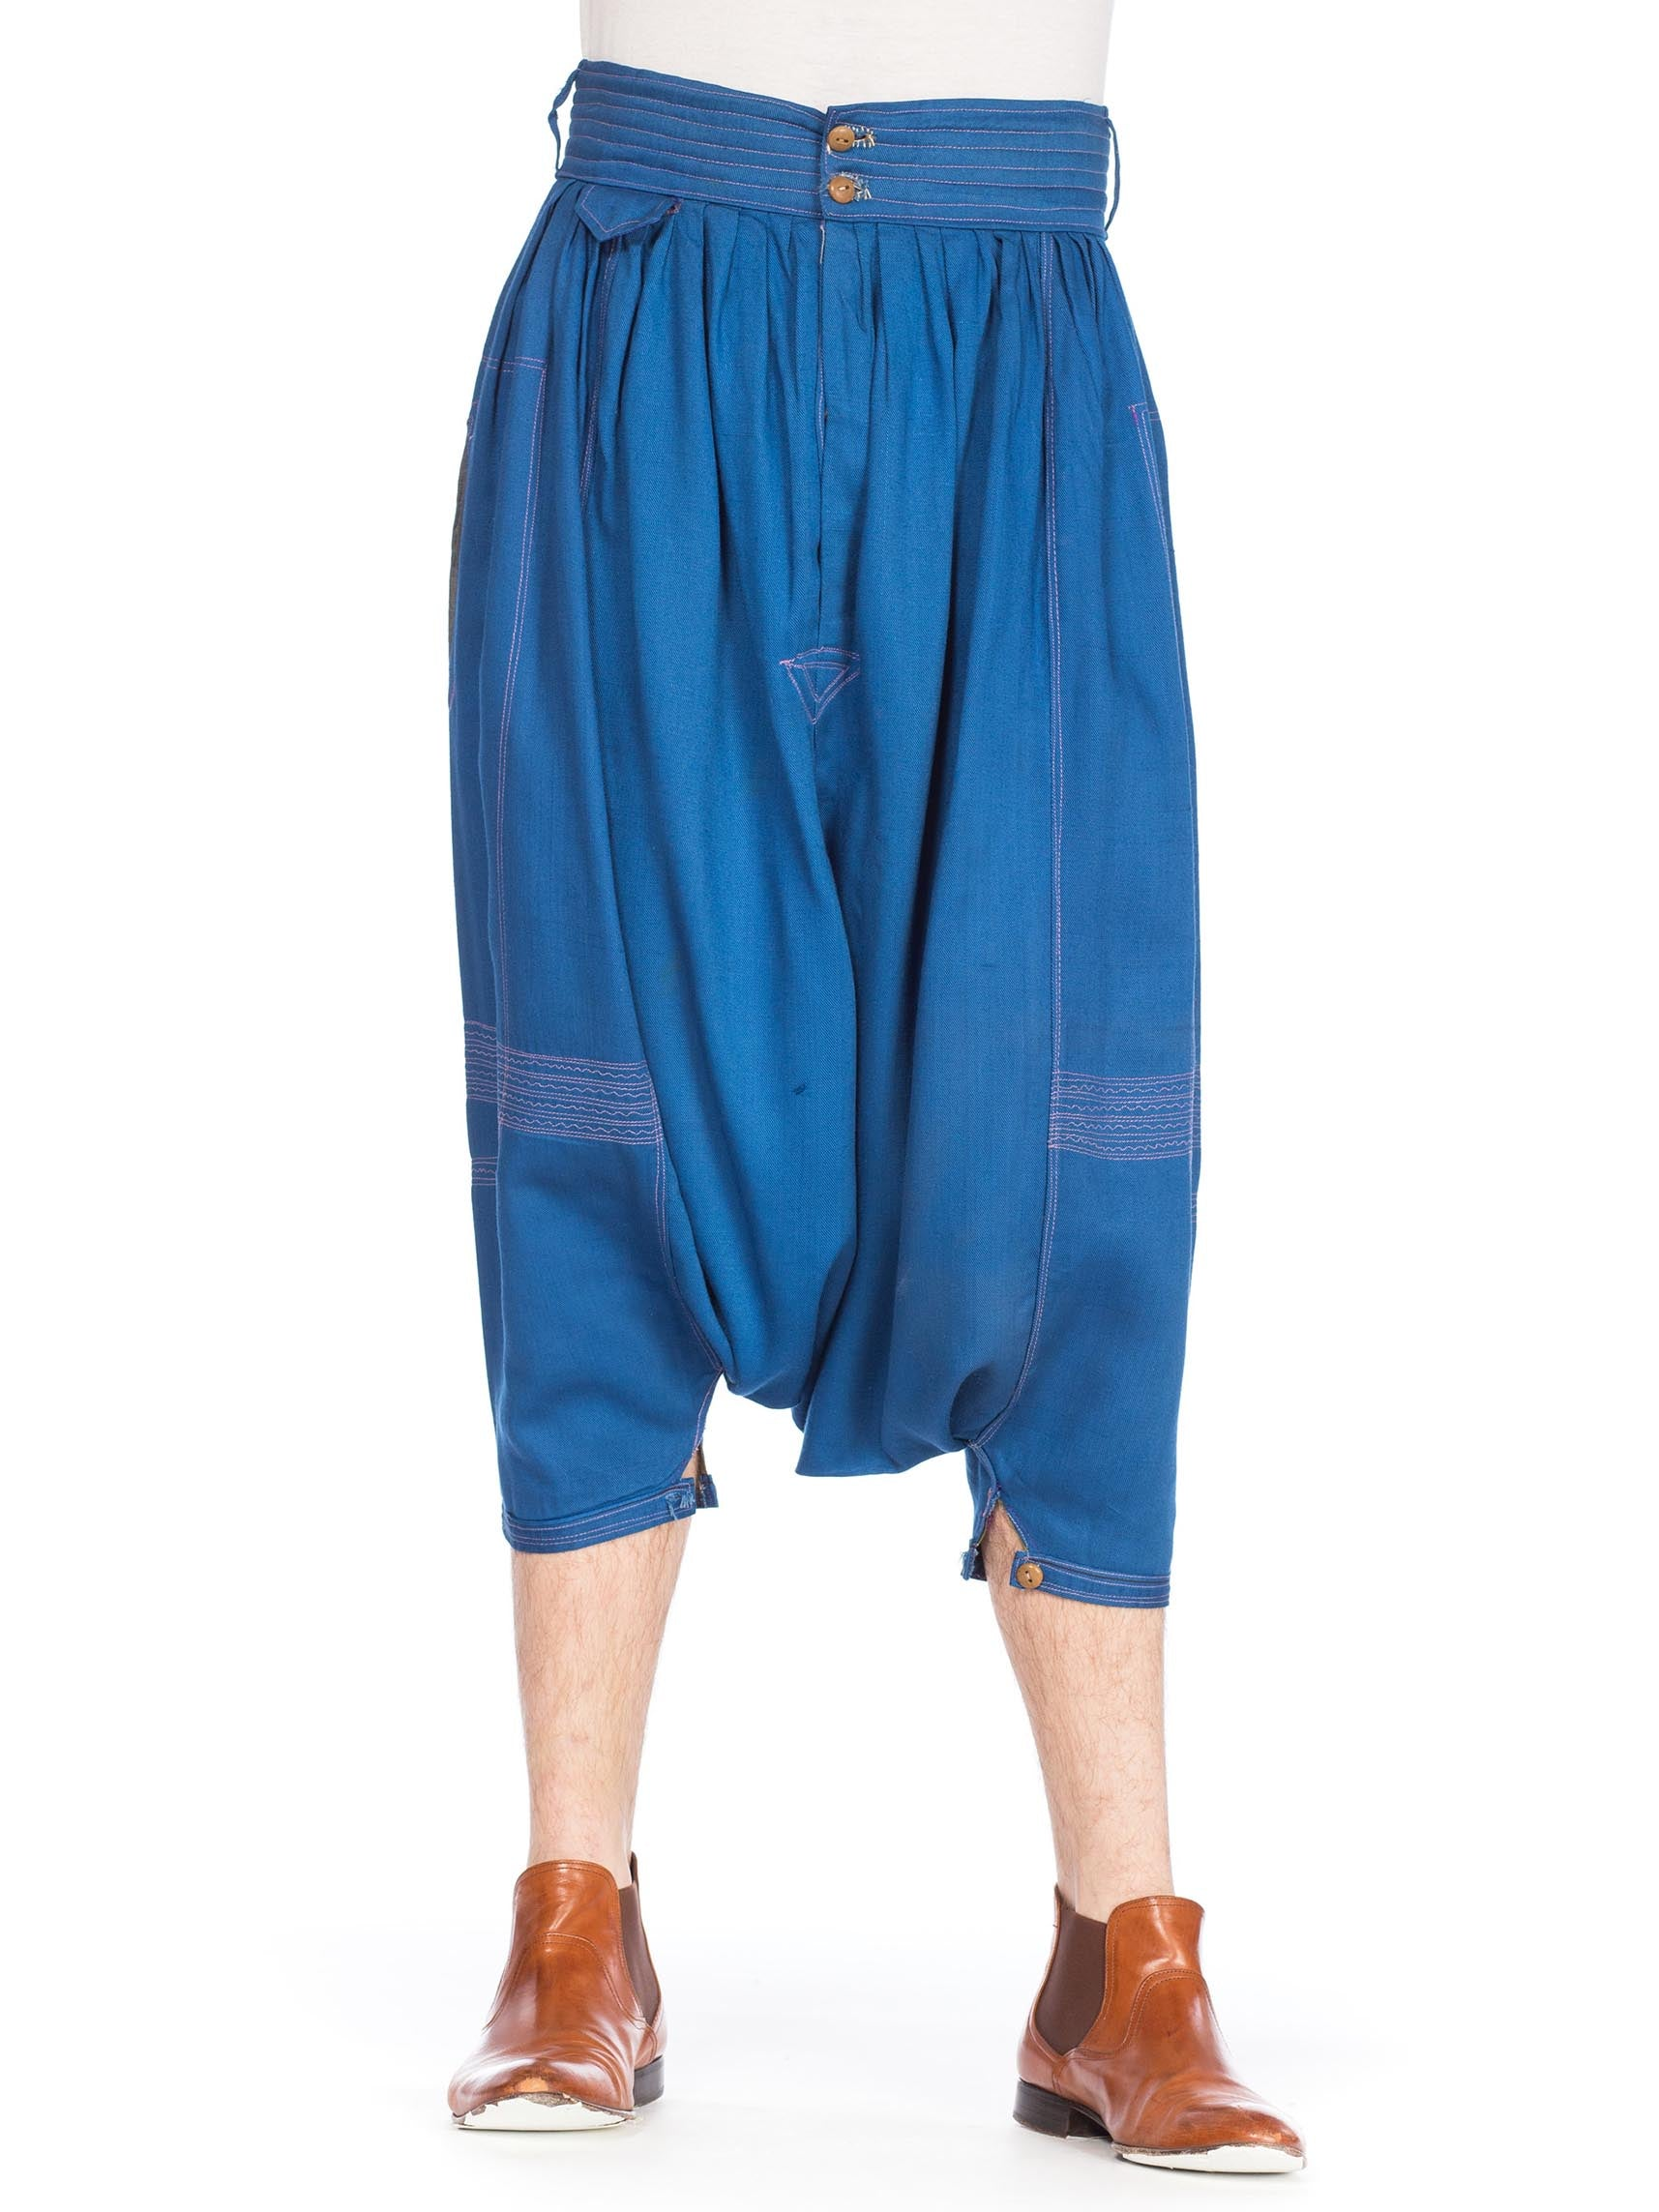 1980S Blue Cotton Middle Eastern Men'S Desert Pants